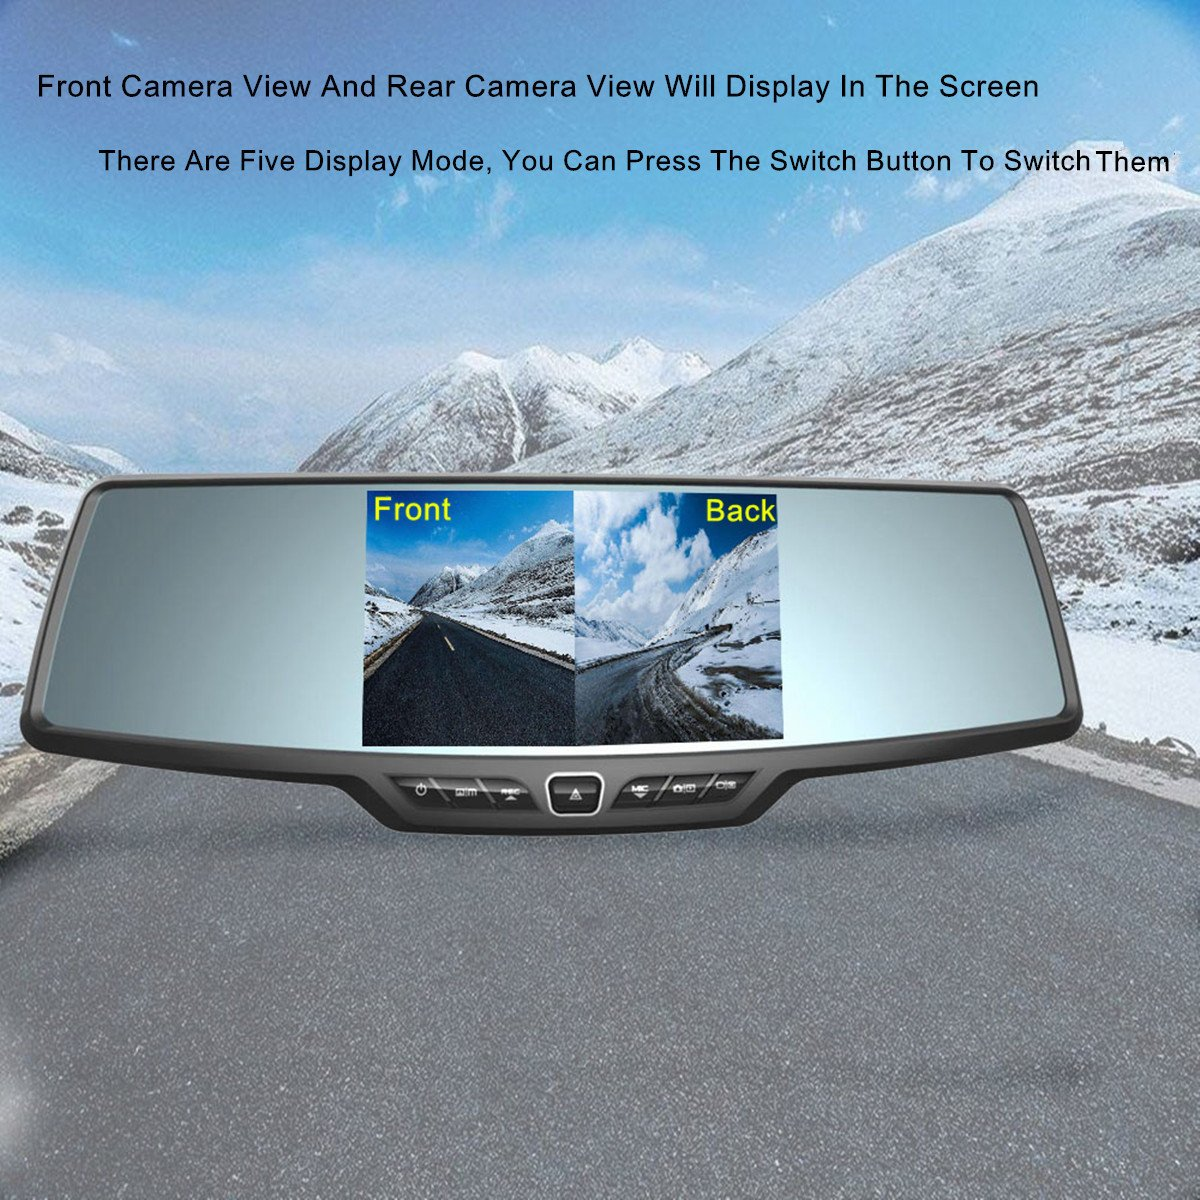 Dash Cam,4.3'' Full HD 1080P Rearview Mirror Dual Lens Video Recorder Car DVR 170 Degree Wide Angle, Loop Recording,G-Sensor,Parking Monitor,Reverse Image by Range Tour (Image #4)